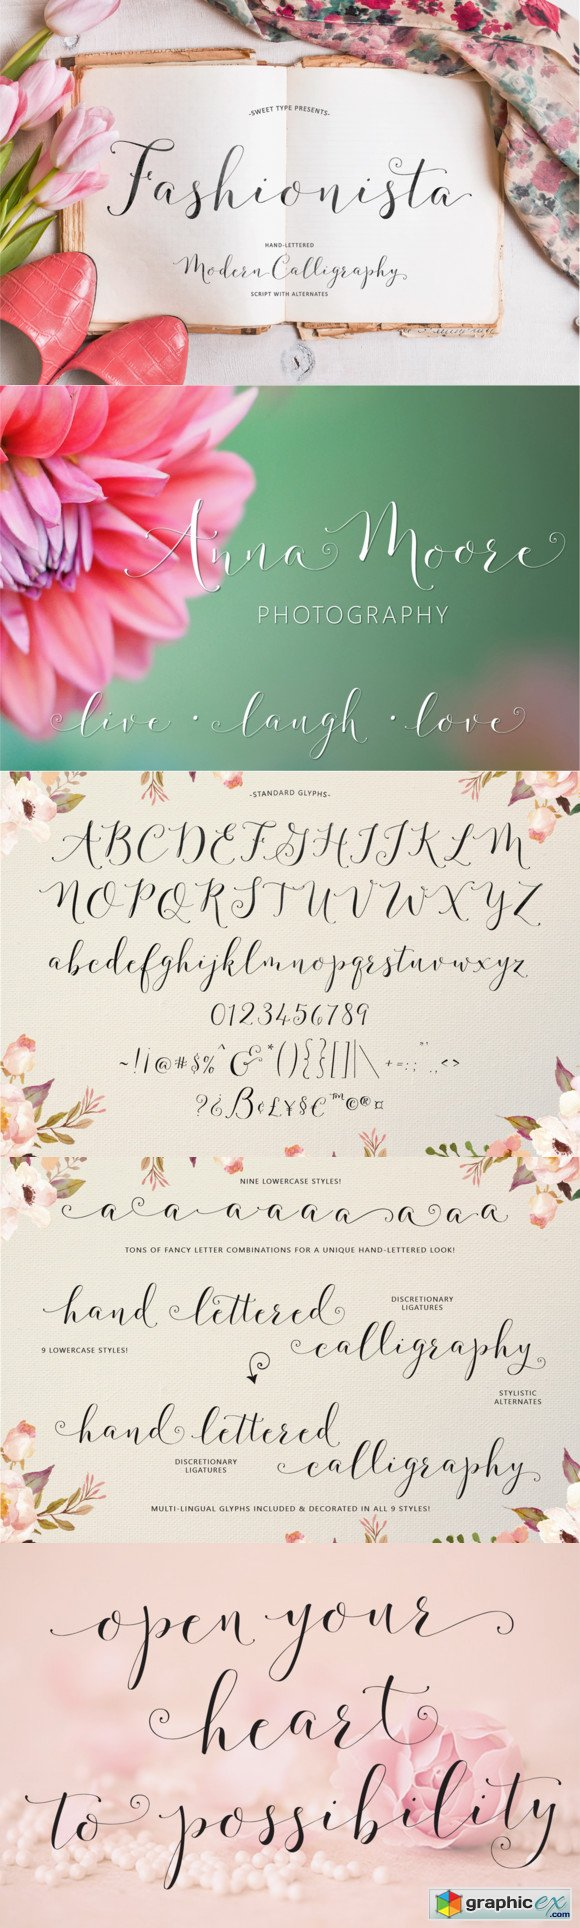 Fashionista Modern Calligraphy FONT